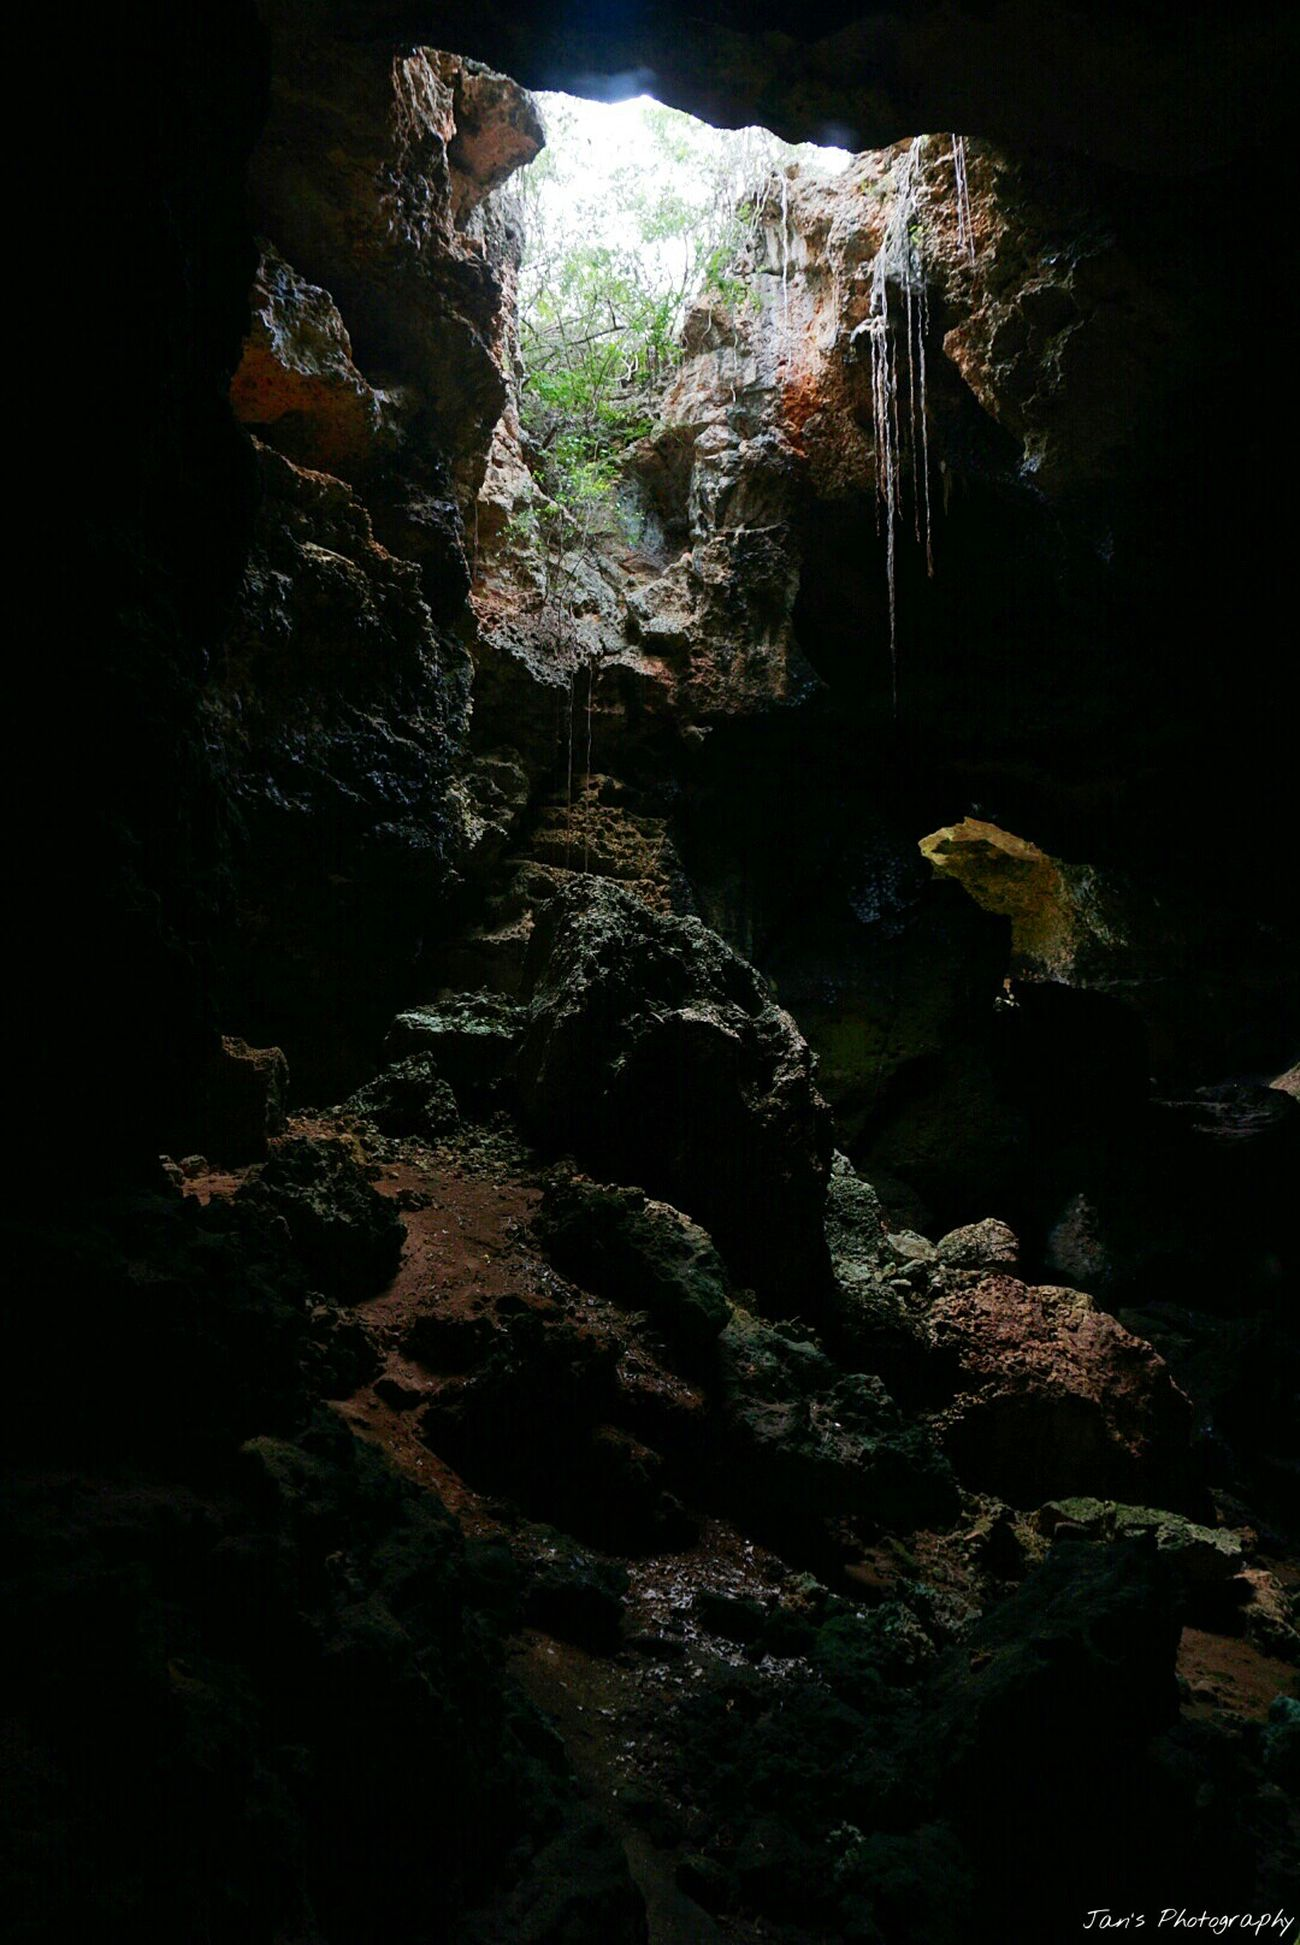 Sony A6000 Sony Hanging Out Check This Out Exceptional Photographs Cave Caves Caves Photography Cave Formations Inside Cave Puerto Rico Guanica, PR Cueva Murciélago Darkness And Light Darkness Dark Cave Adventure Dangerous Places Rare Beauty EyeEm Best Shots EyeEm Nature Lover Nature_collection Nature Textures From My Point Of View Isourhome